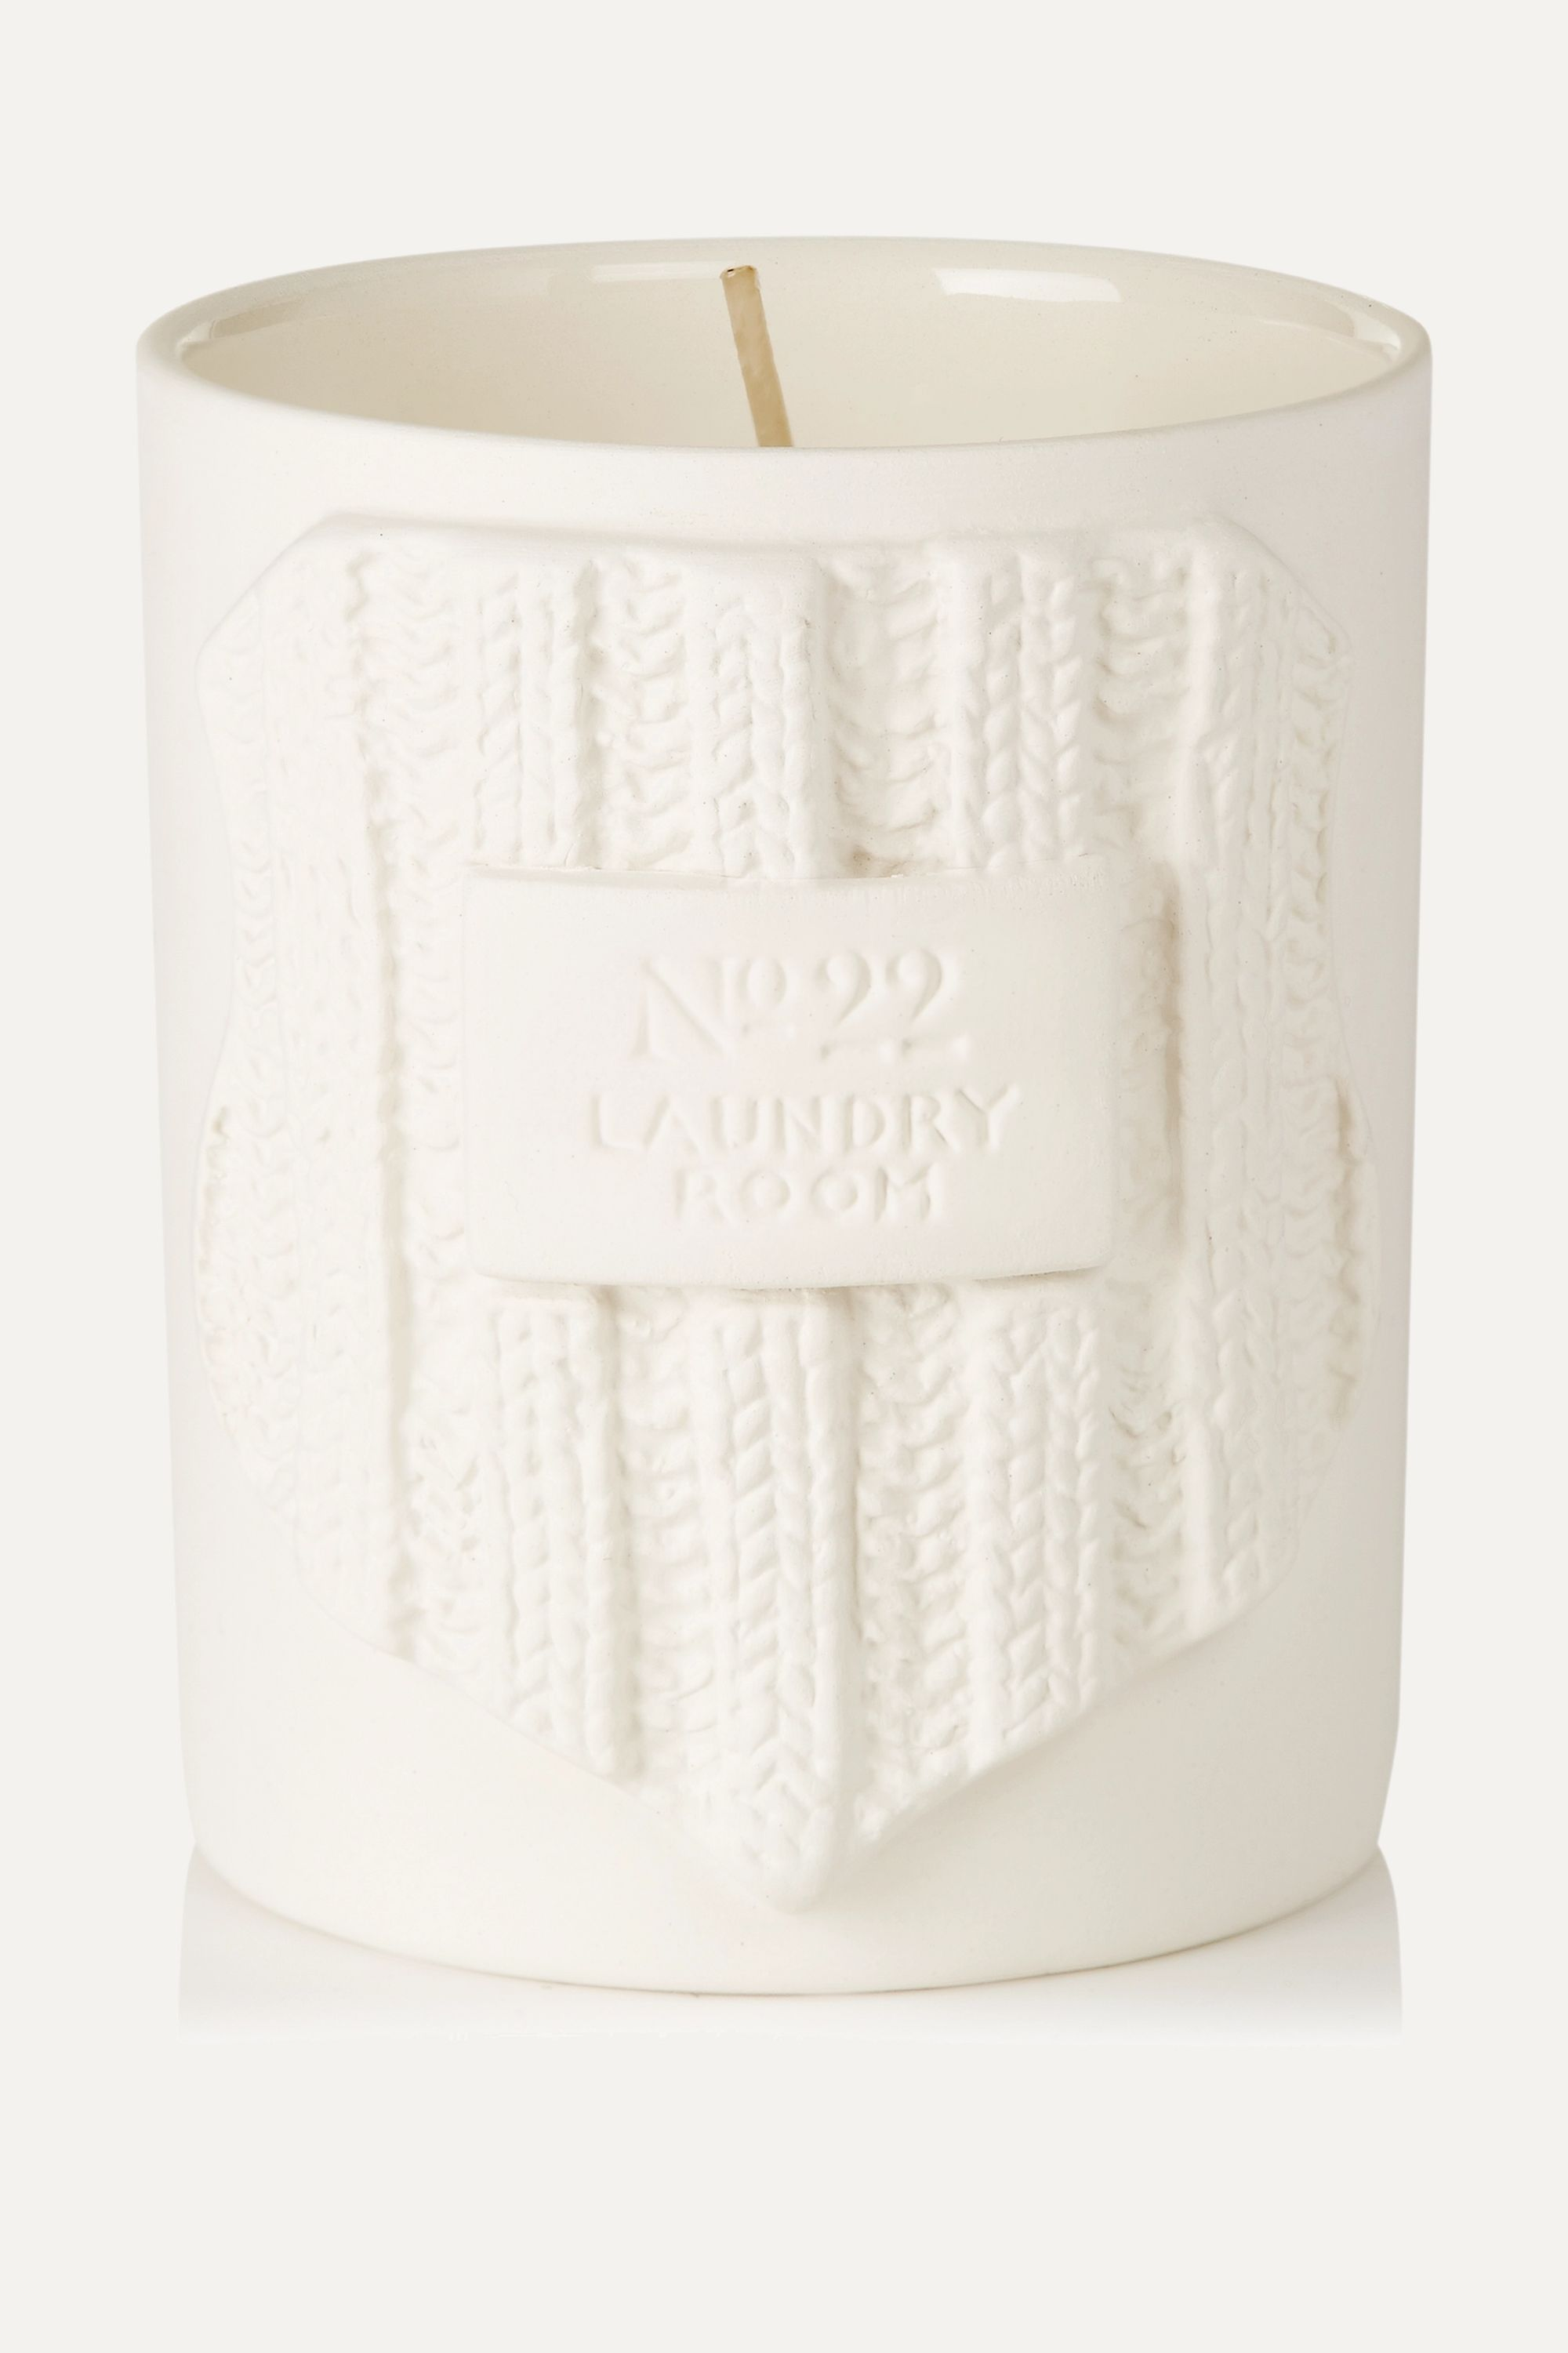 No.22 Laundry Room scented candle, 250g